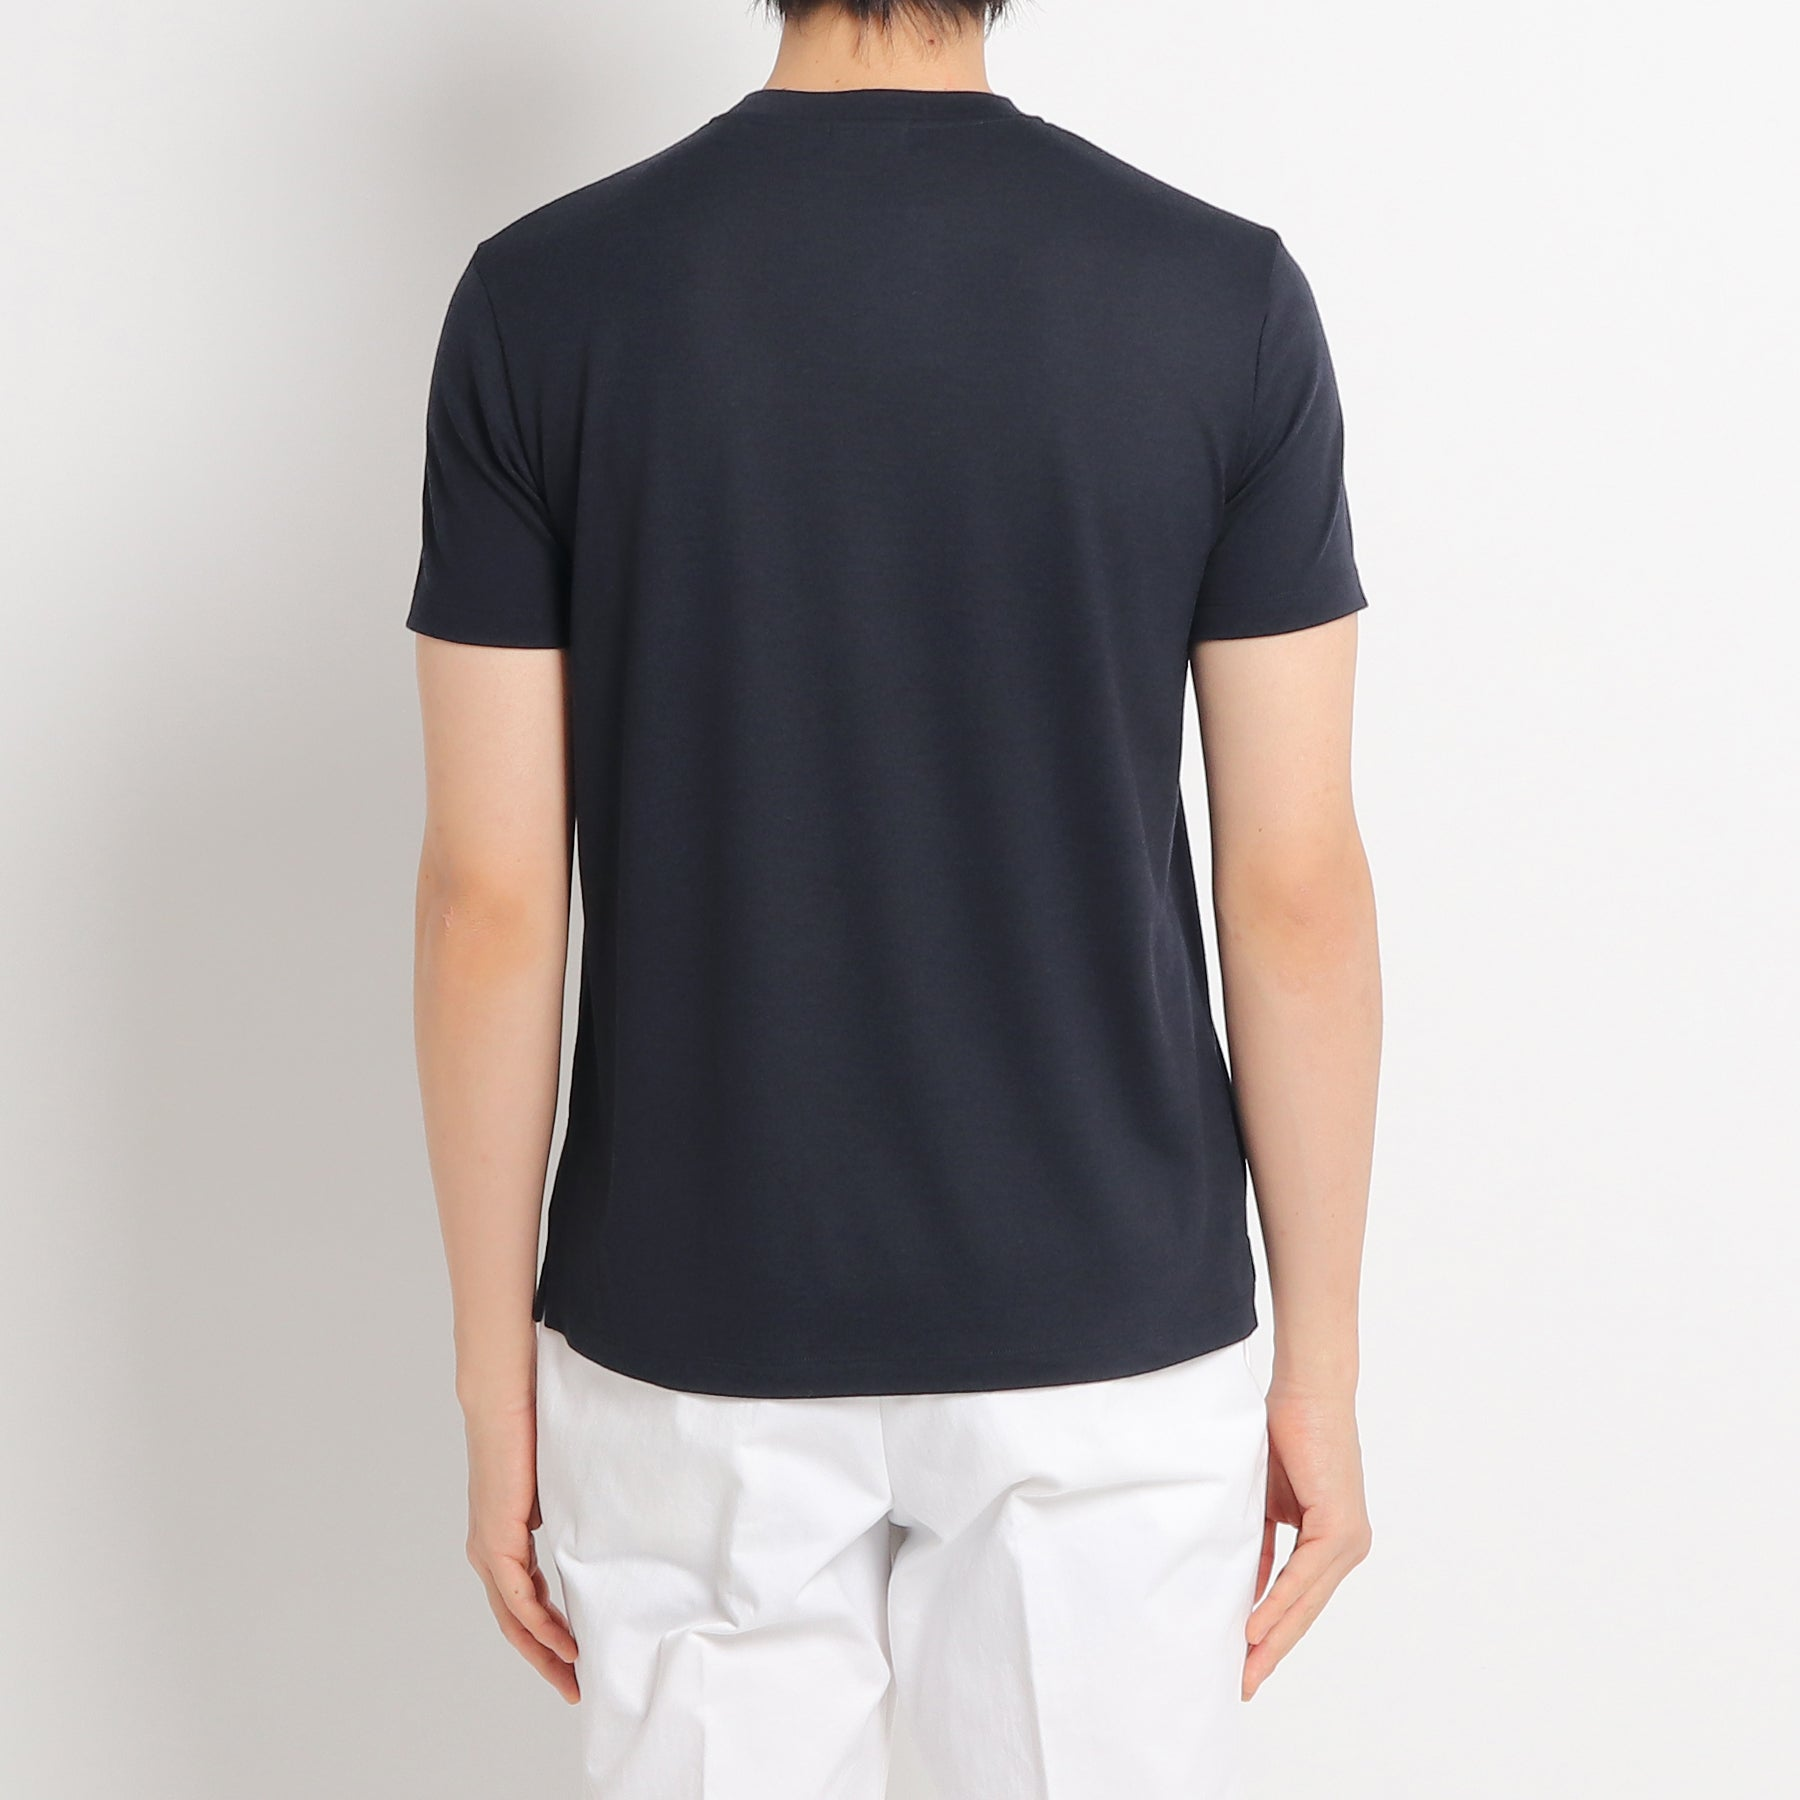 EFT Wool T-shirt Col. Navy